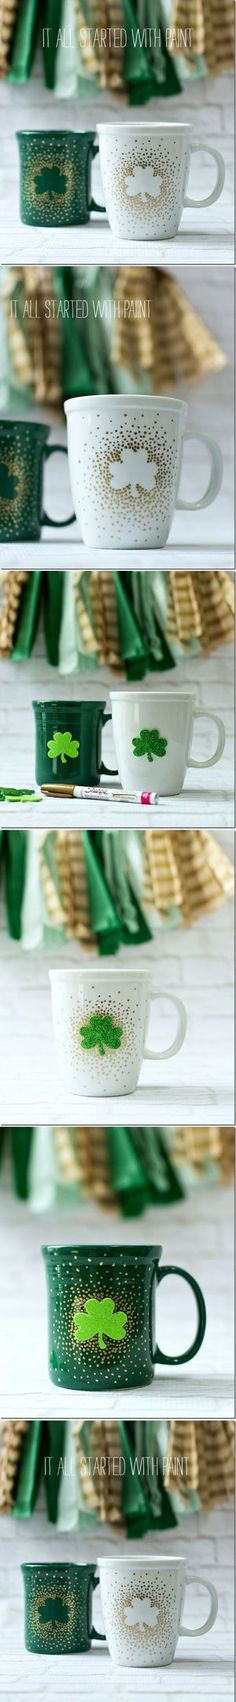 DIY Irish Coffee Mugs